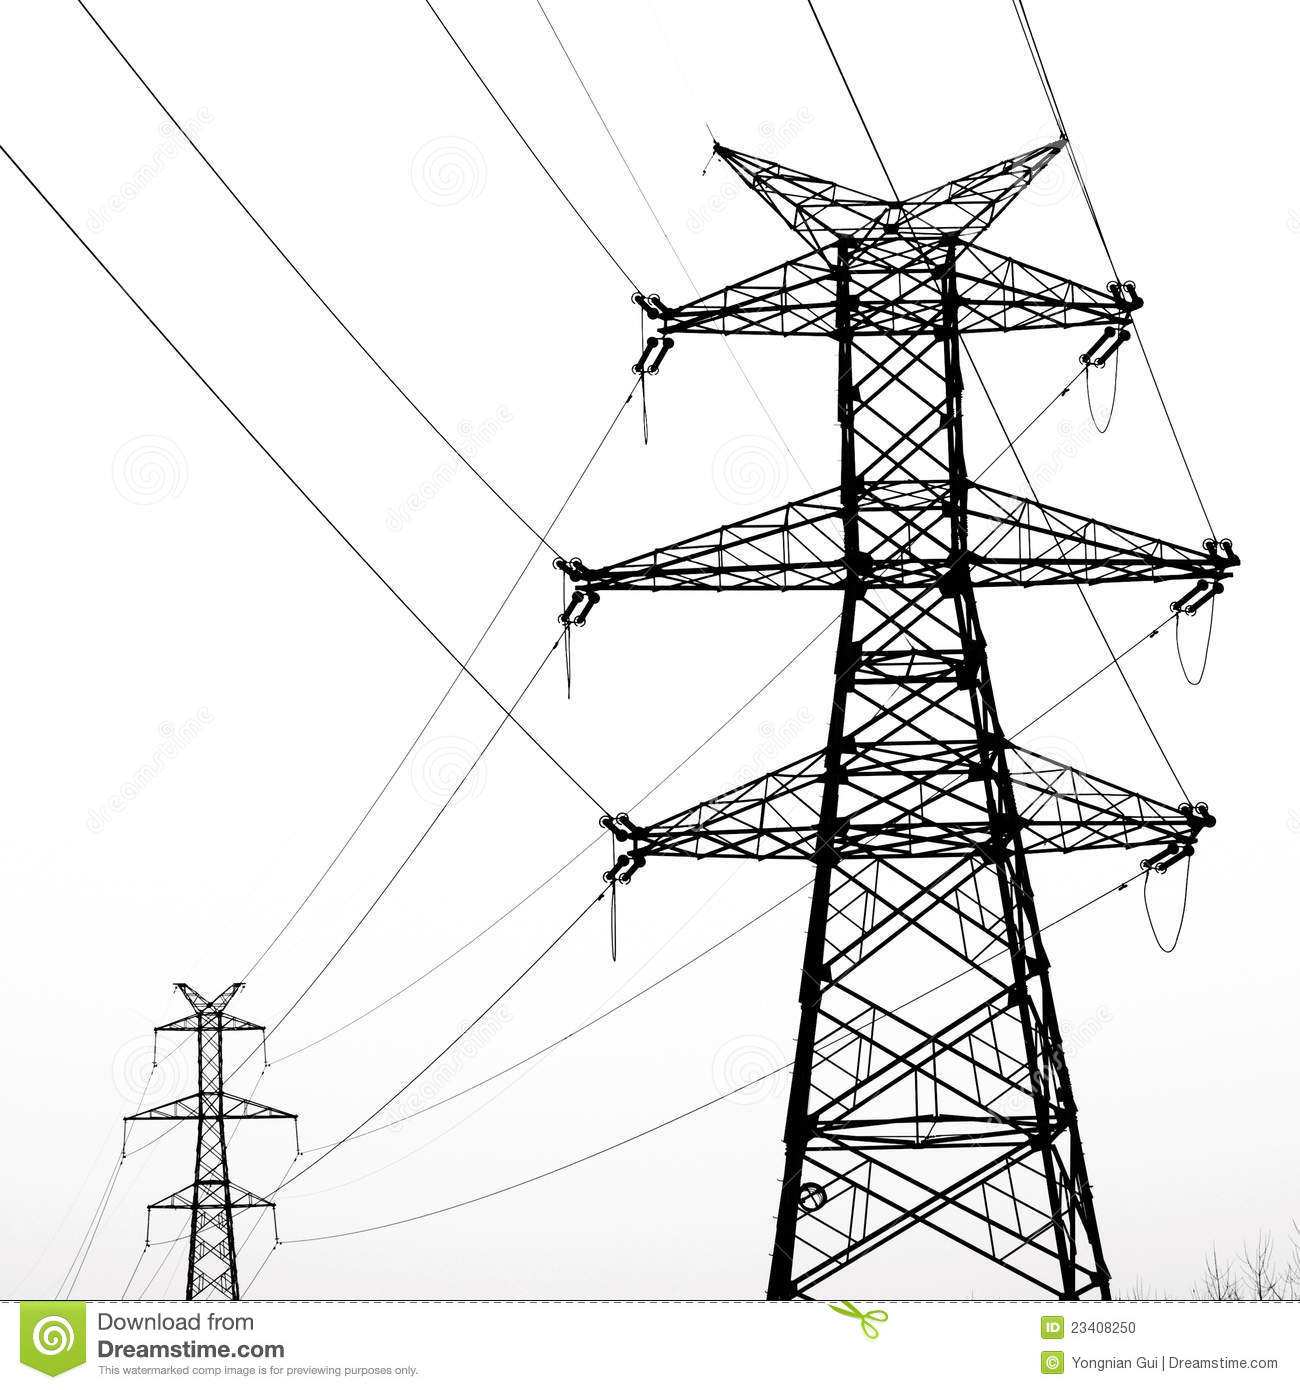 Electricity pylon clipart.